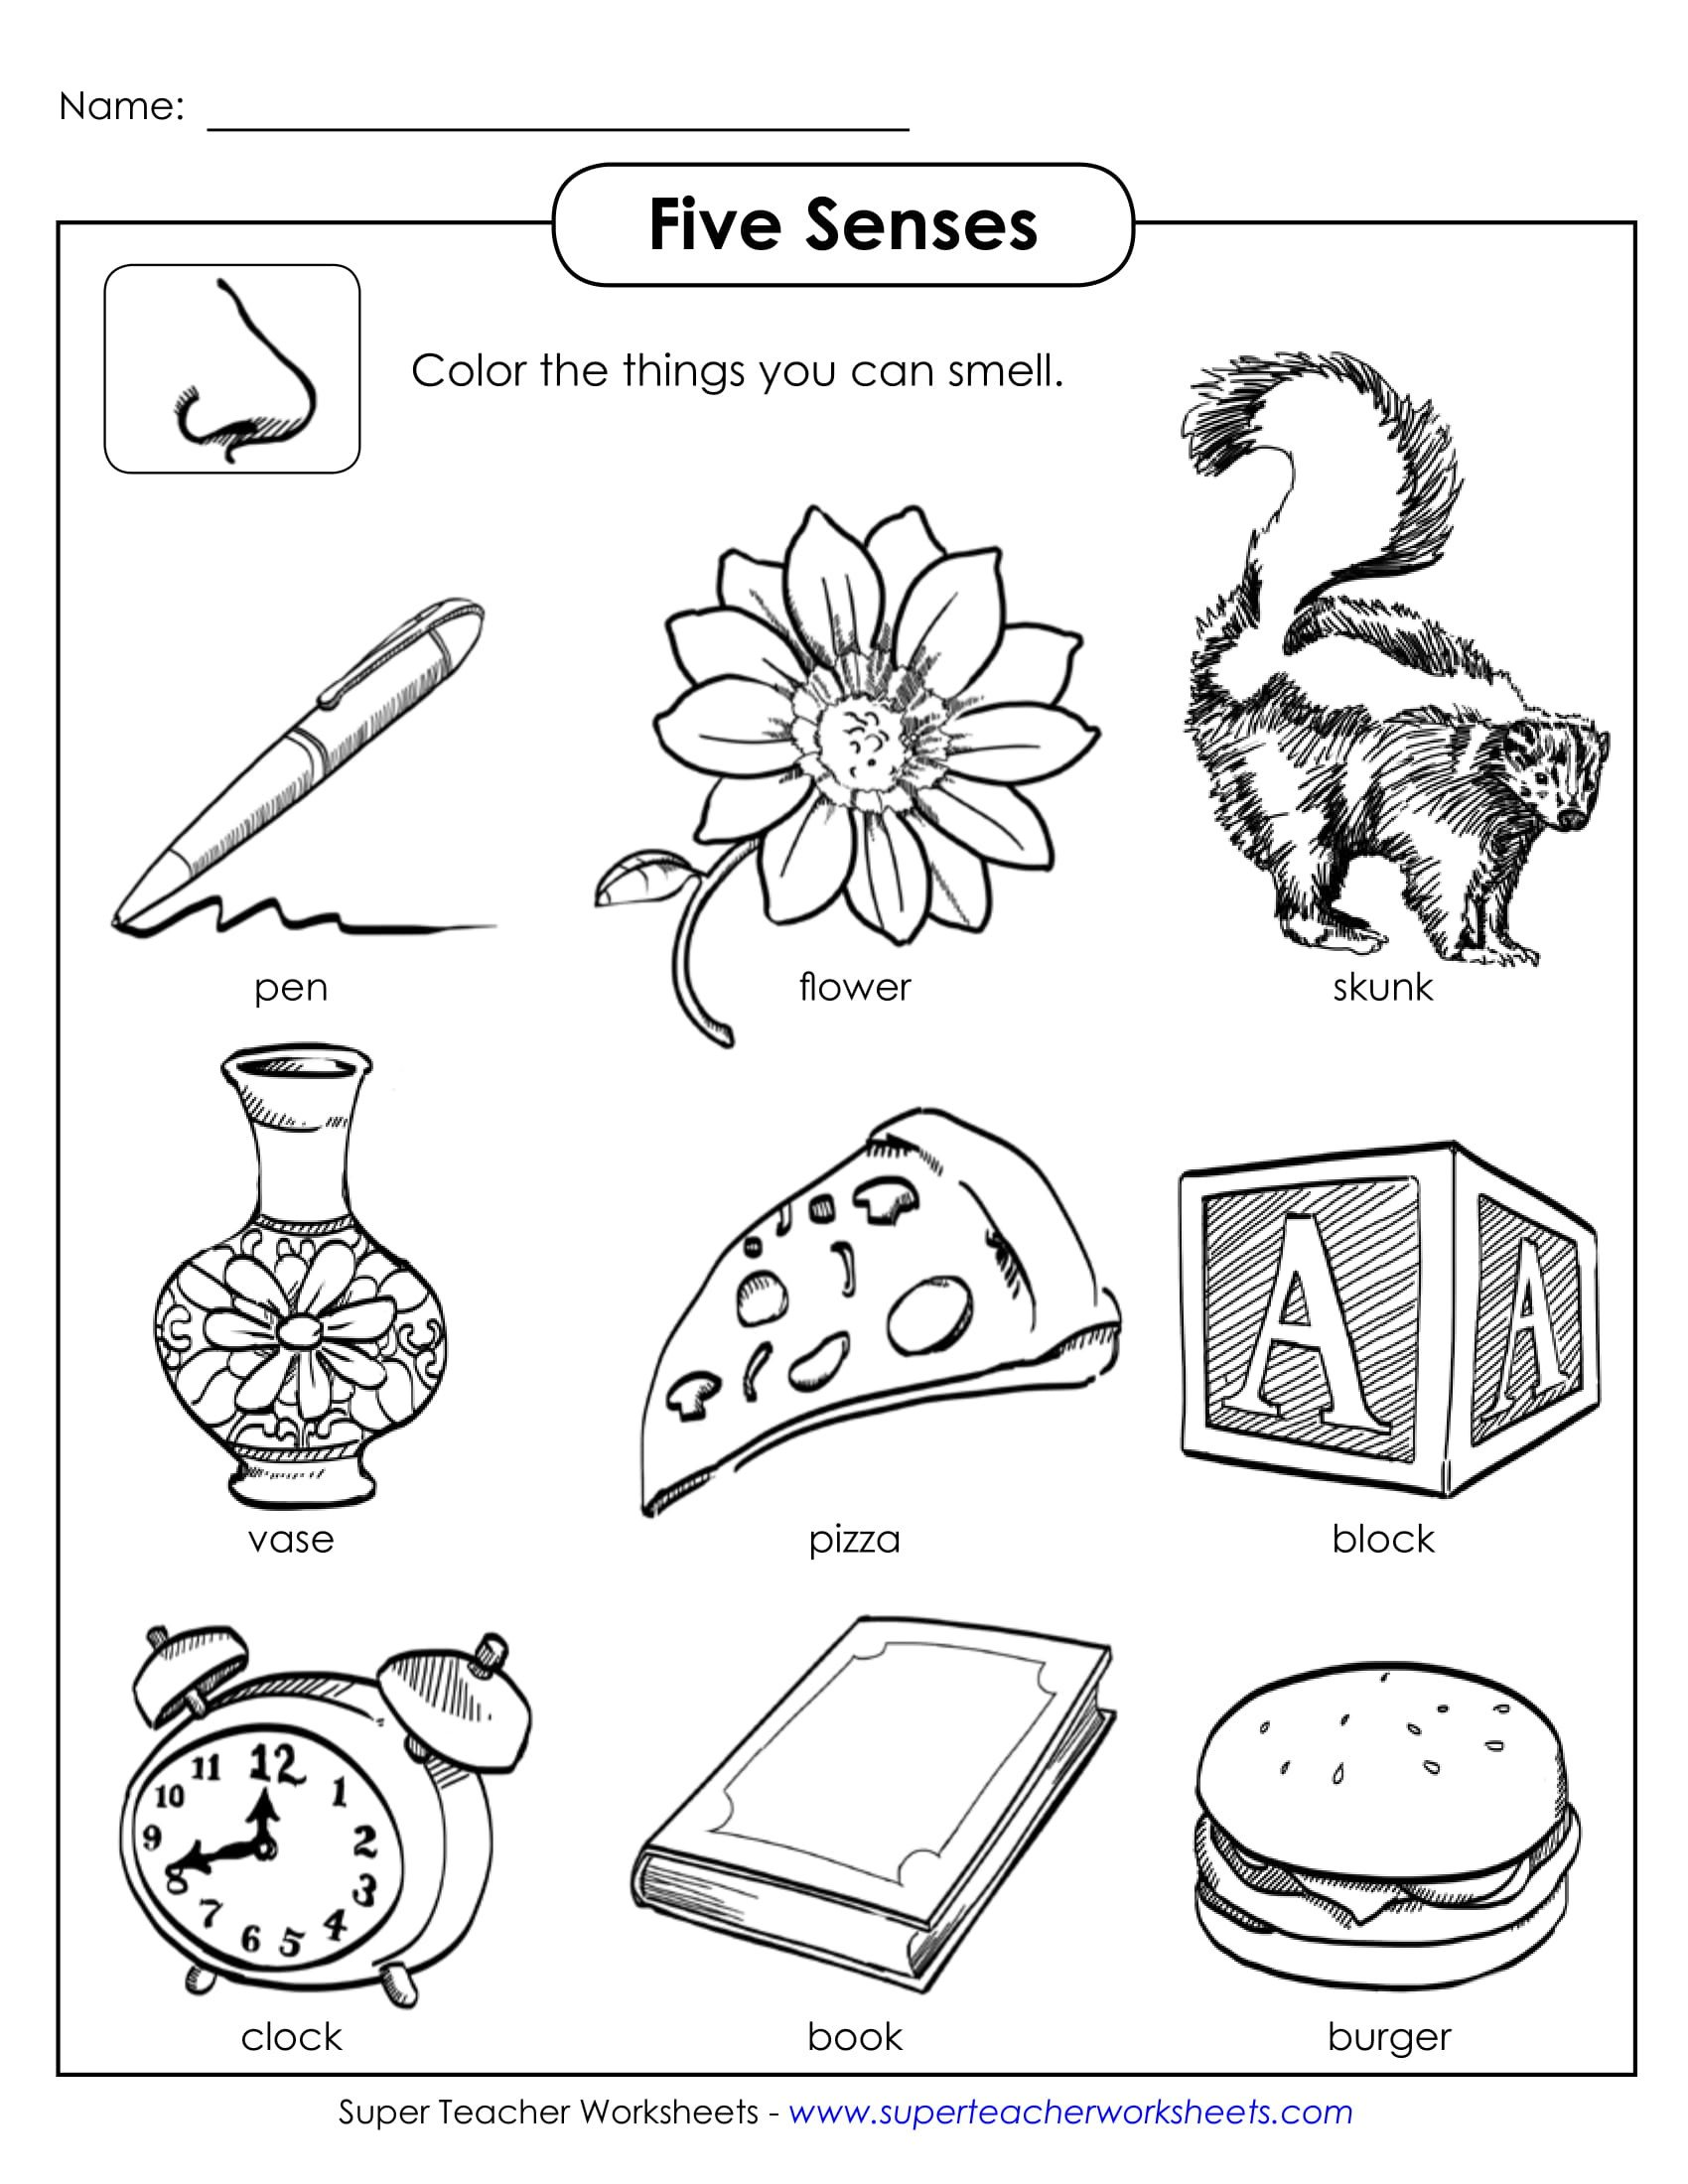 5 Senses Printable Worksheets Worksheet Senses Printable Worksheets and Activities for